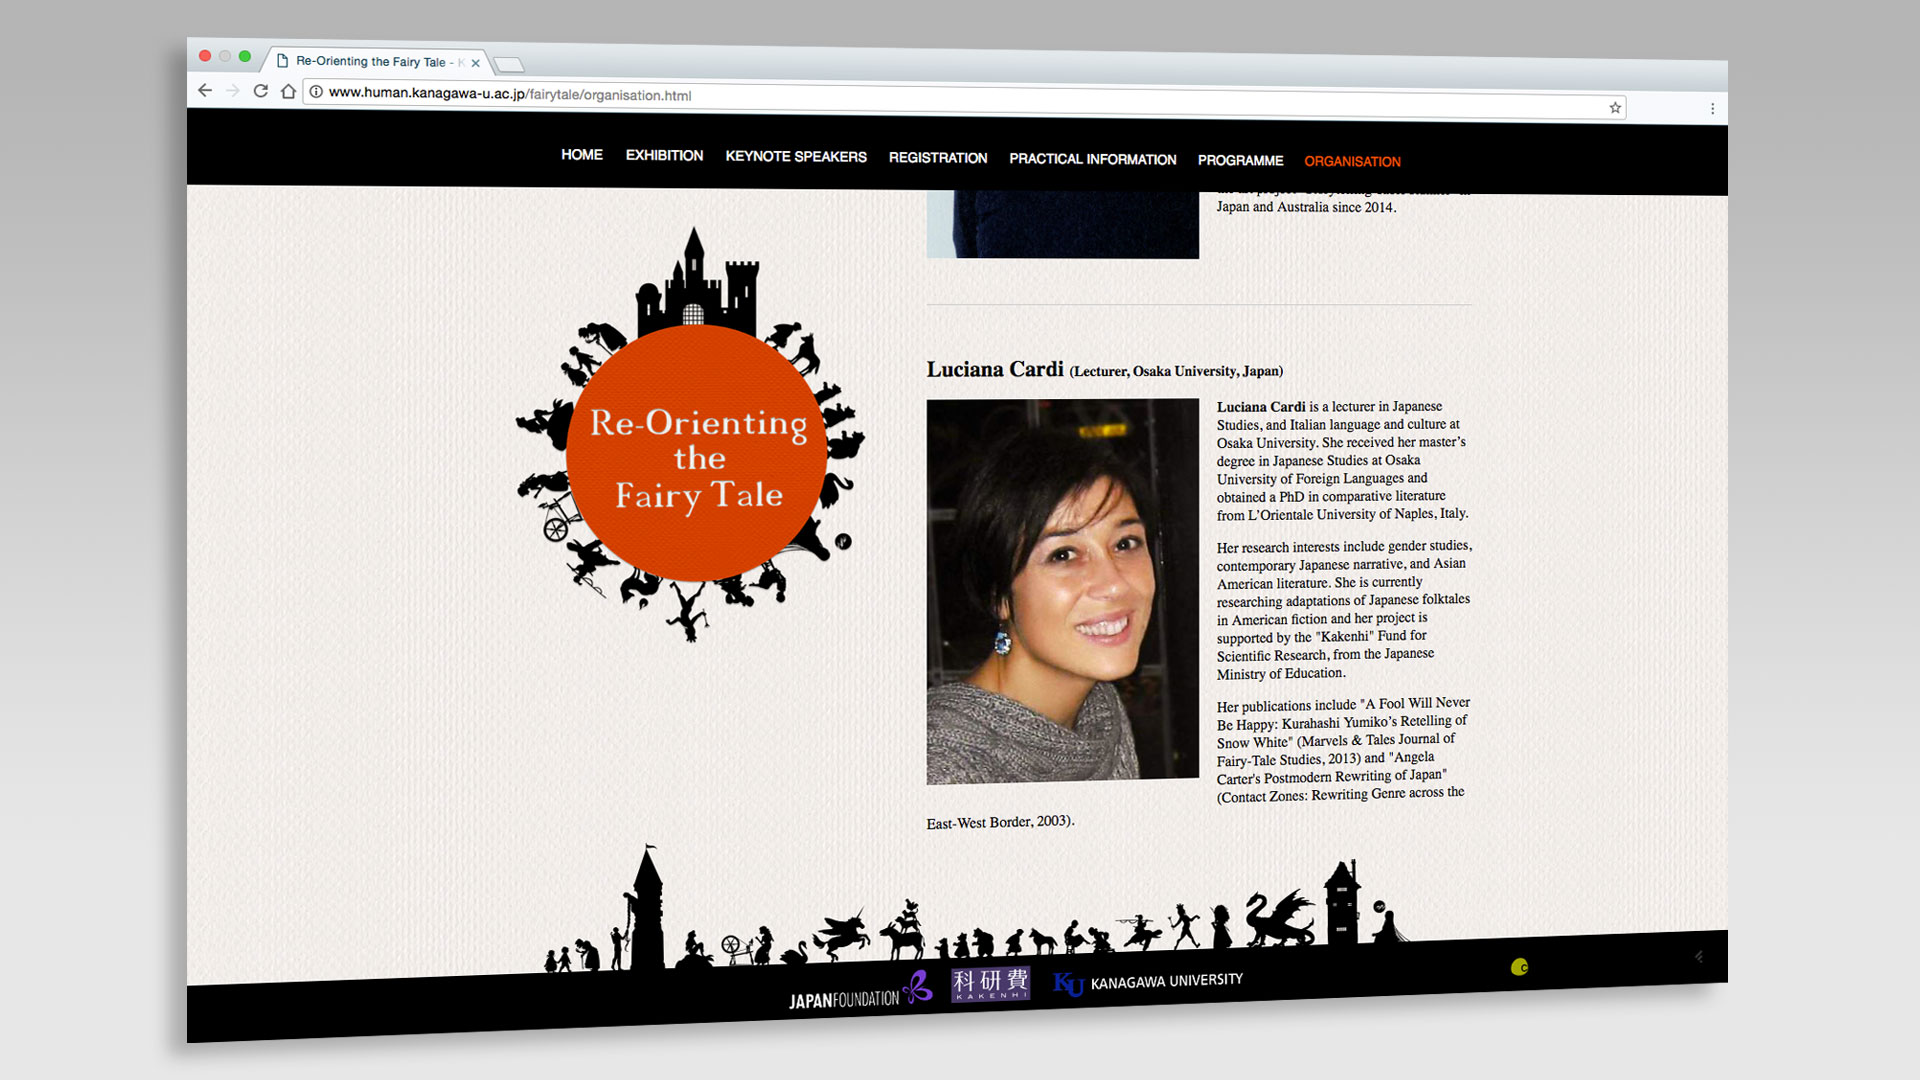 Organisers Page and the site footer